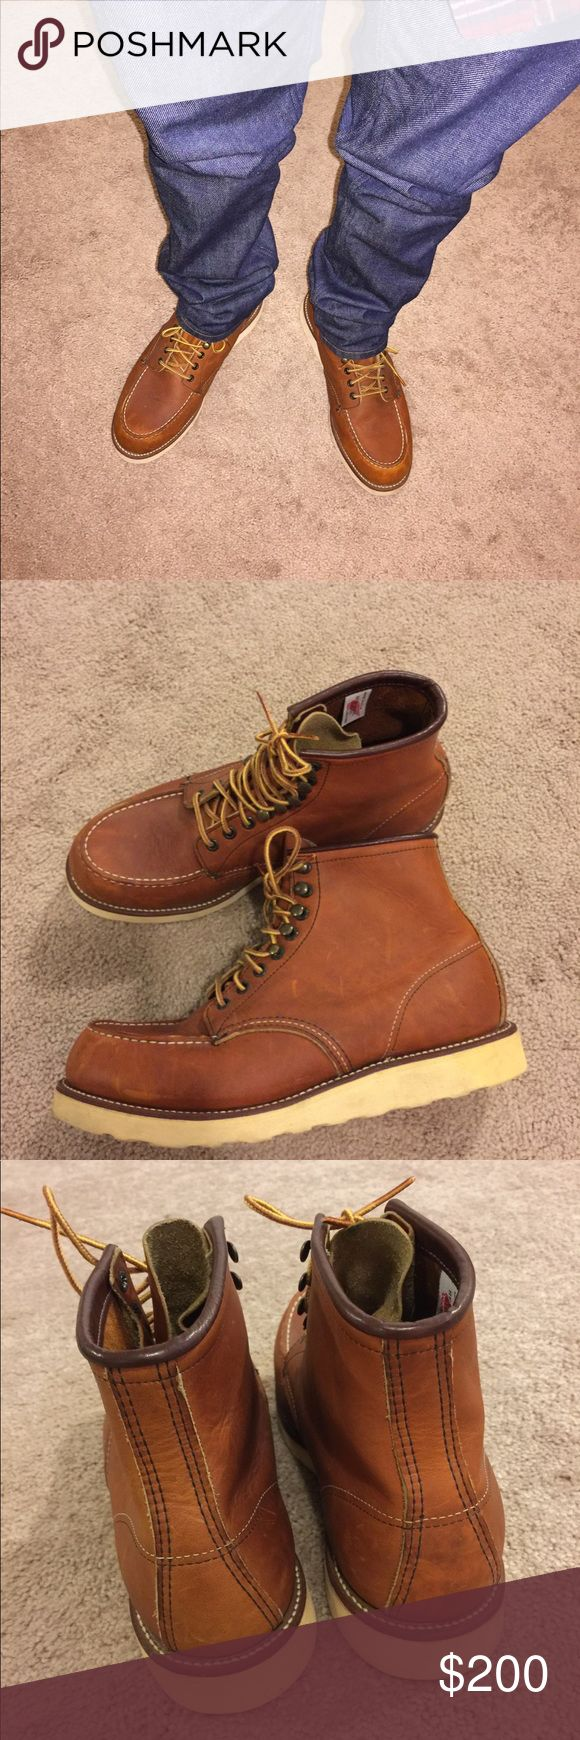 Men's Red Wing Boots In great shape 875 Red Wing Shoes Shoes Boots